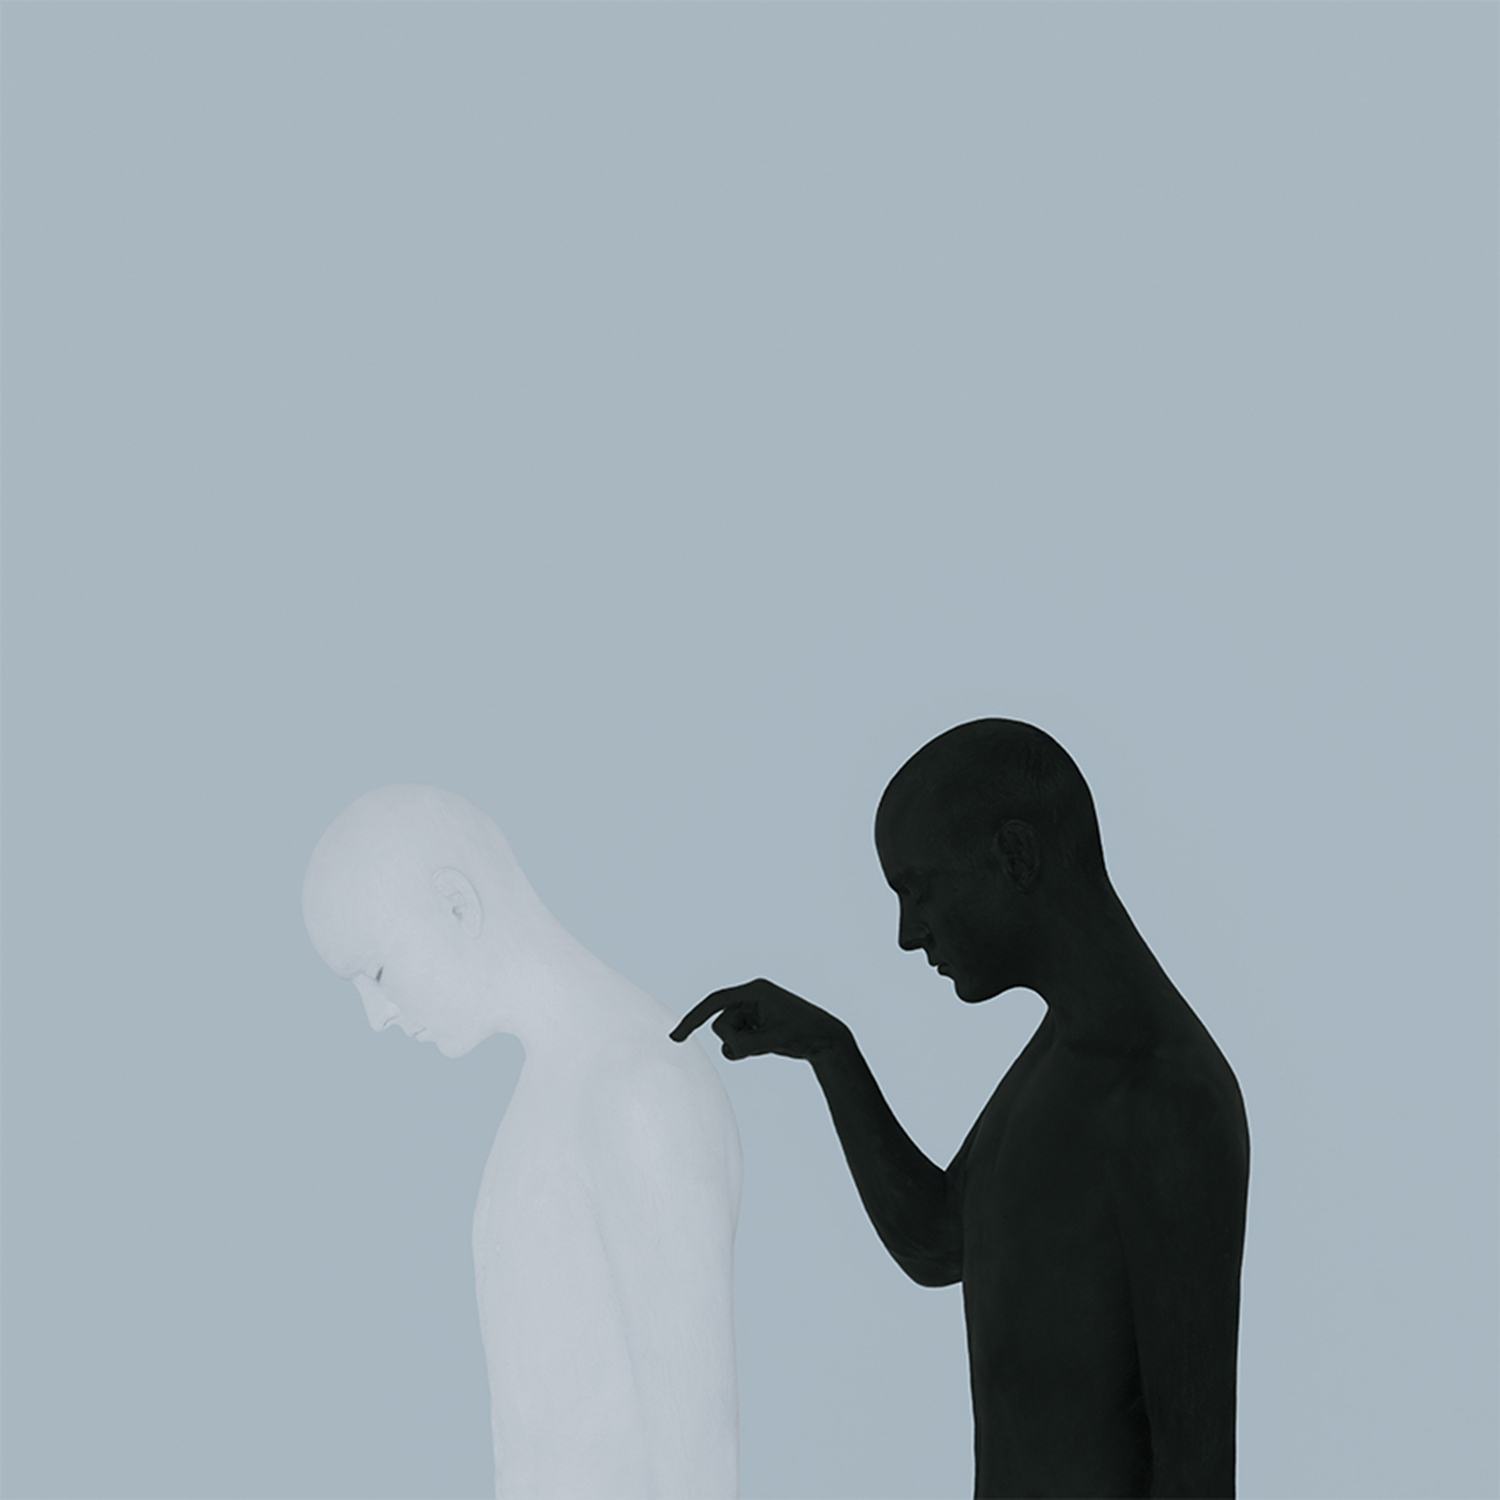 Gabriel Isak - The Shadow and the Self